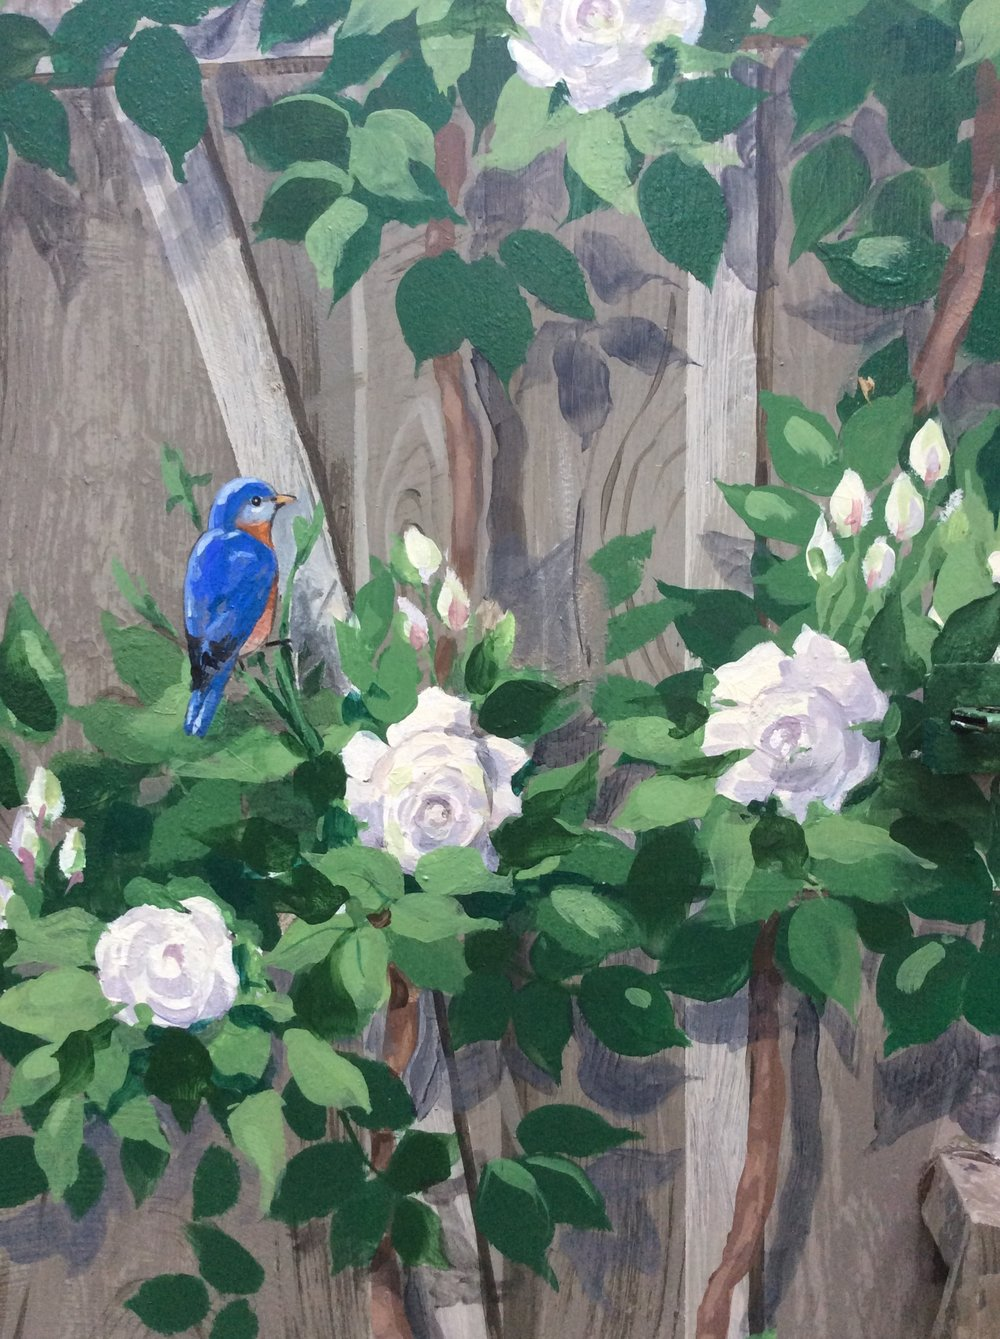 The NY State Bird, the Eastern Bluebird, resting in the roses climbing the cottage.